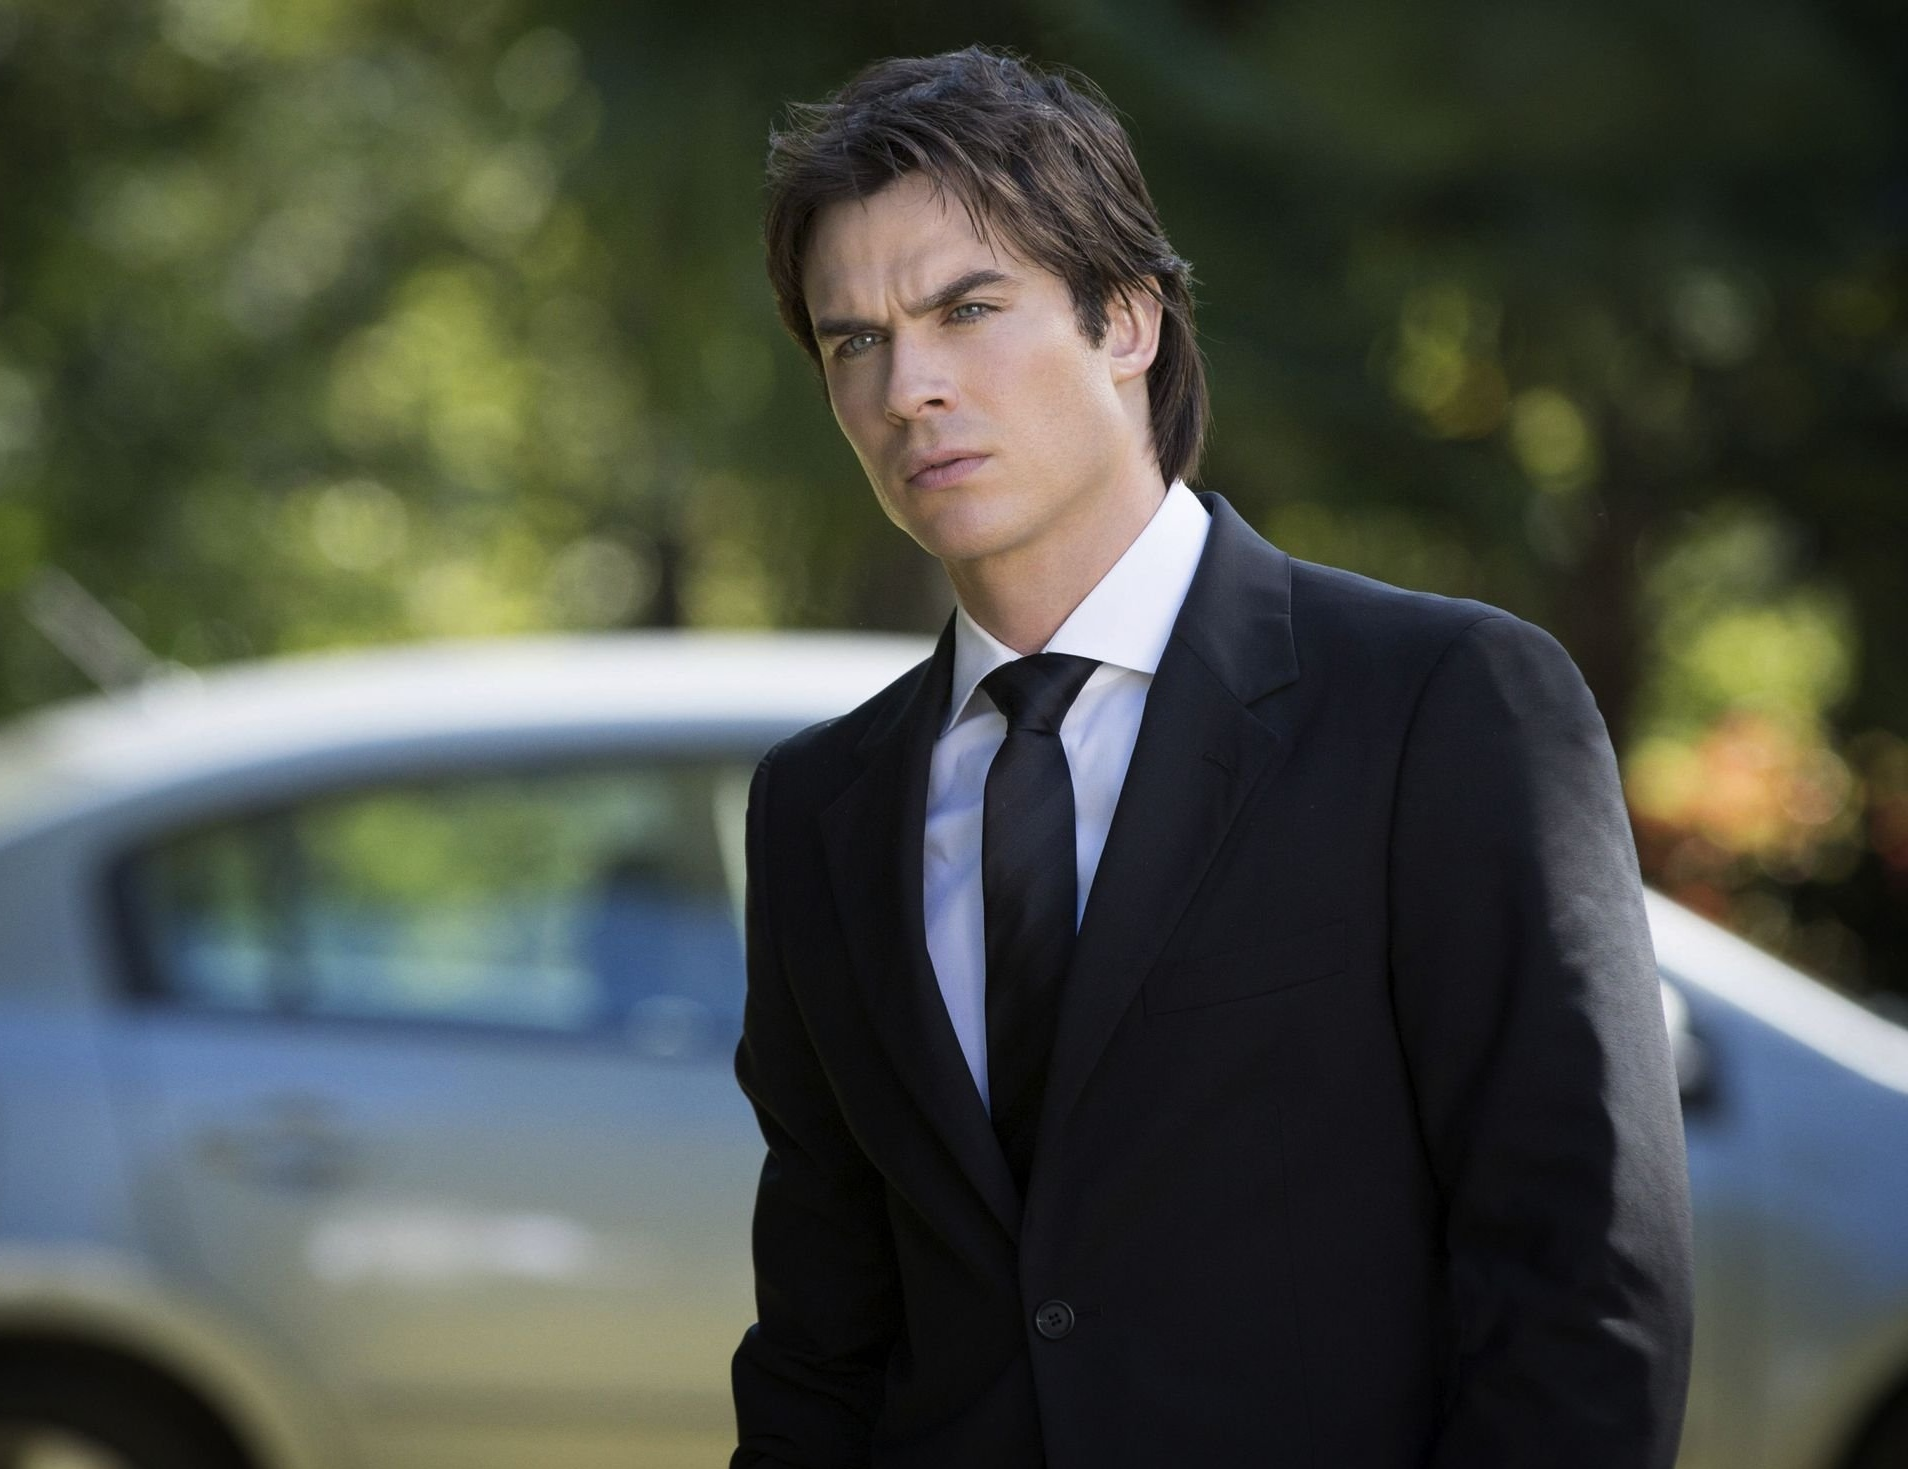 Ian Somerhalder in a suit.